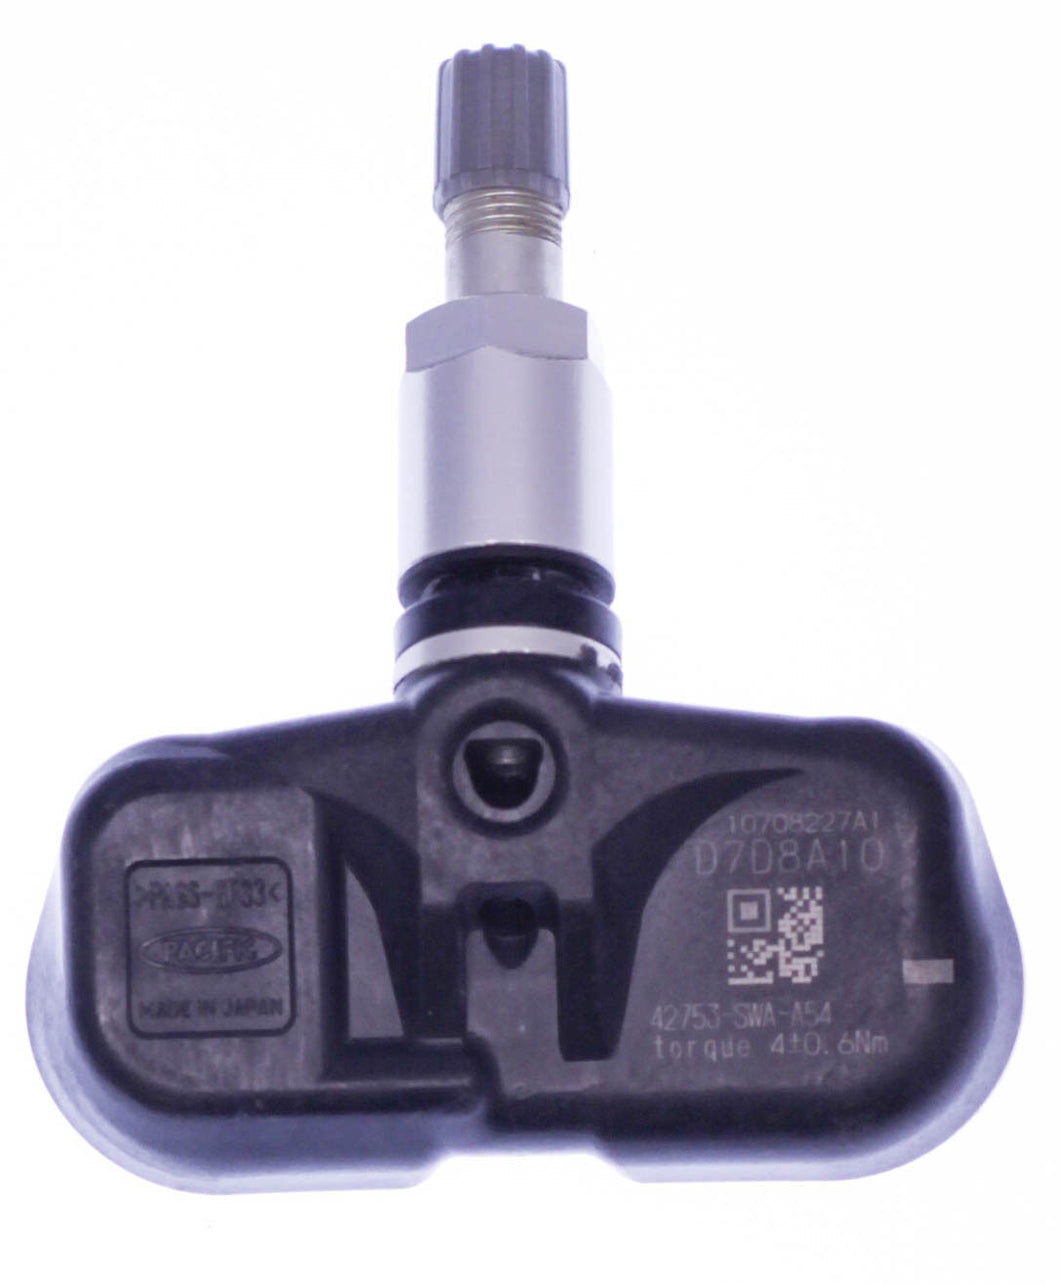 1 Replacement TPMS Sensor for Accord CRV Factory OEM PMV-107M